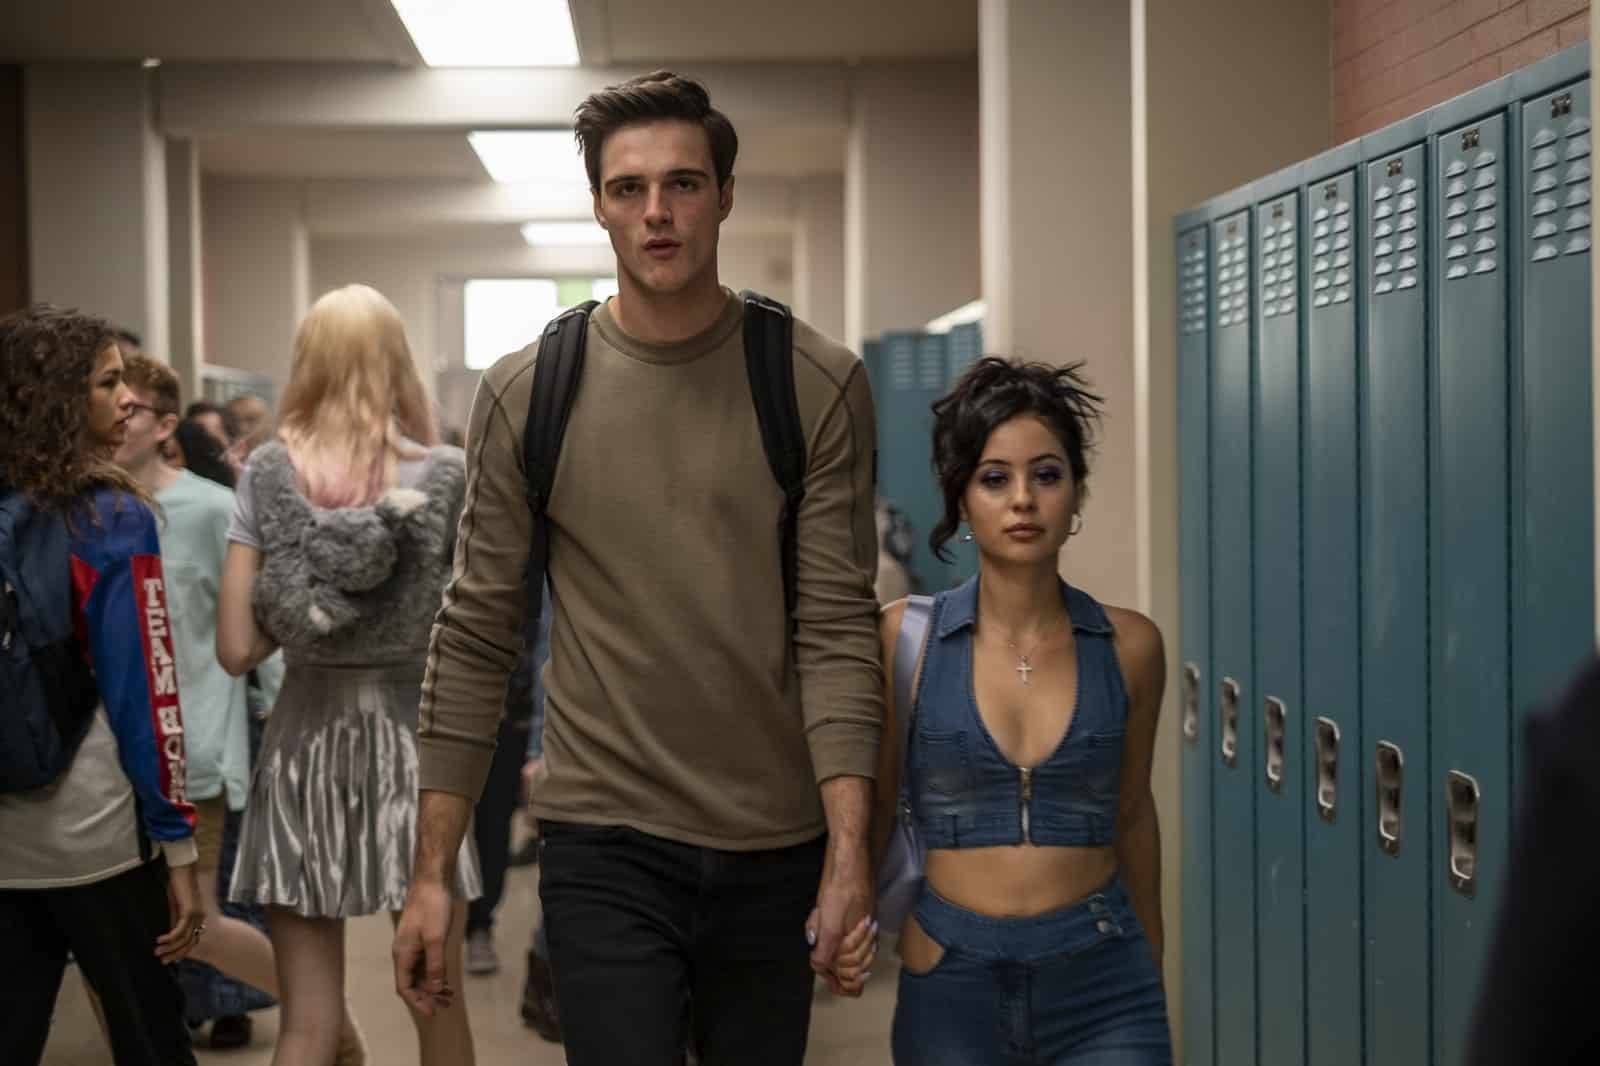 Nate (Jacob Elordi) y Maddy (Alexa Demie) en Euphoria T1 Capitulo 3 Made You Look